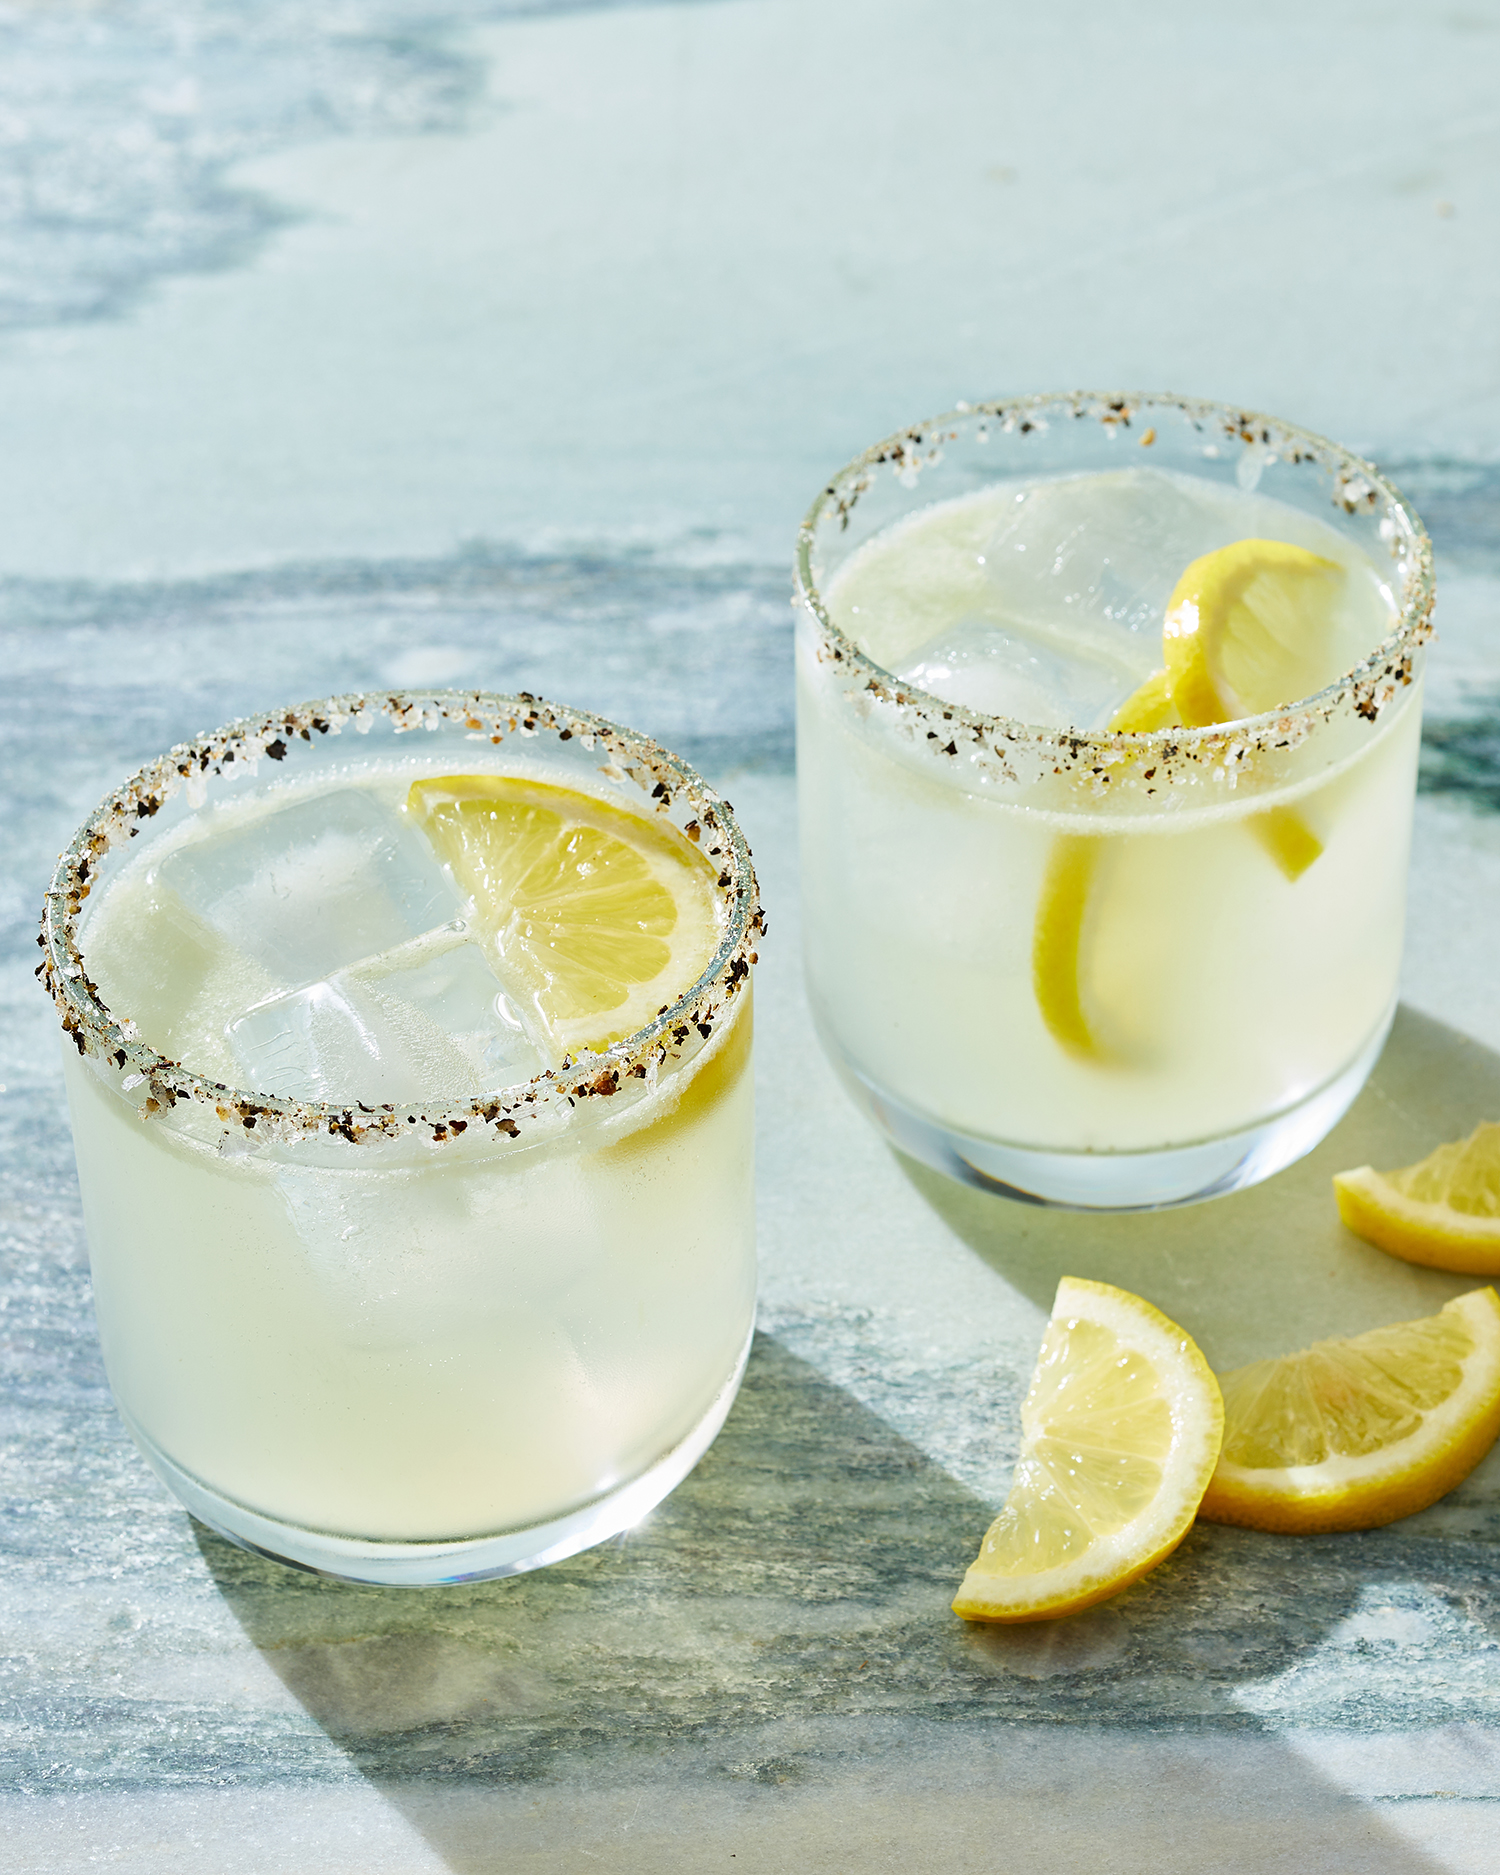 Our Food Editors Say *This* Is the Drink of the Summer